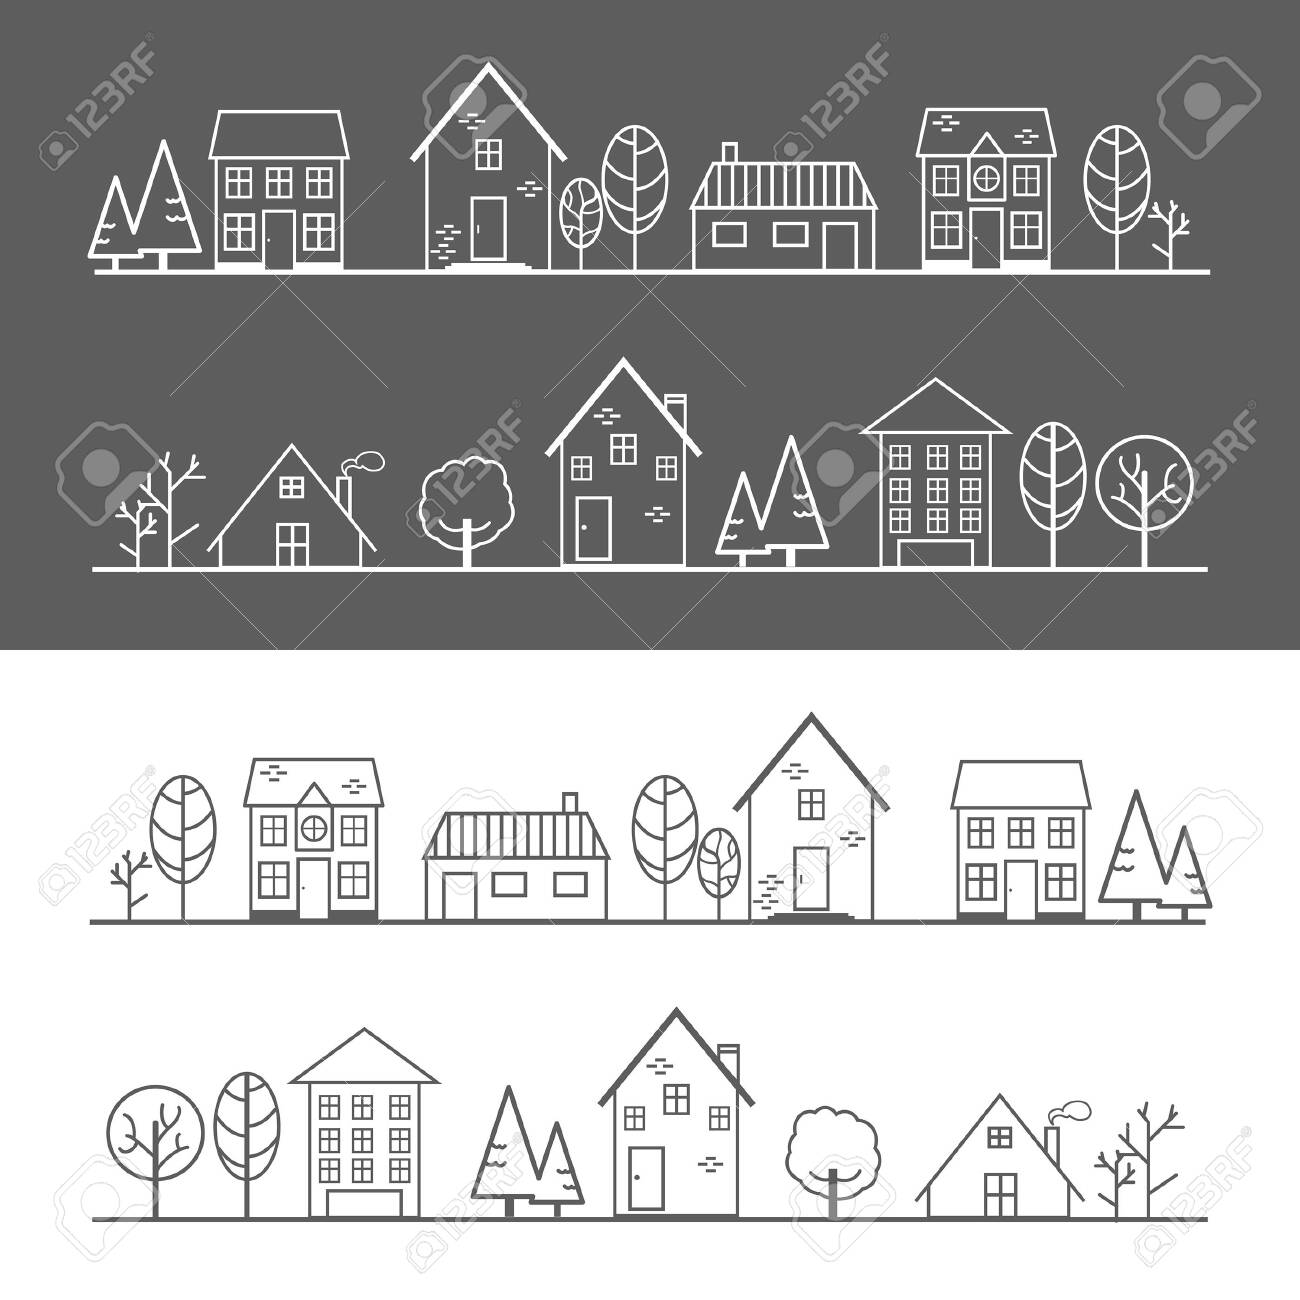 Icons, houses, trees and villages on a dark gray and white background - 123528998